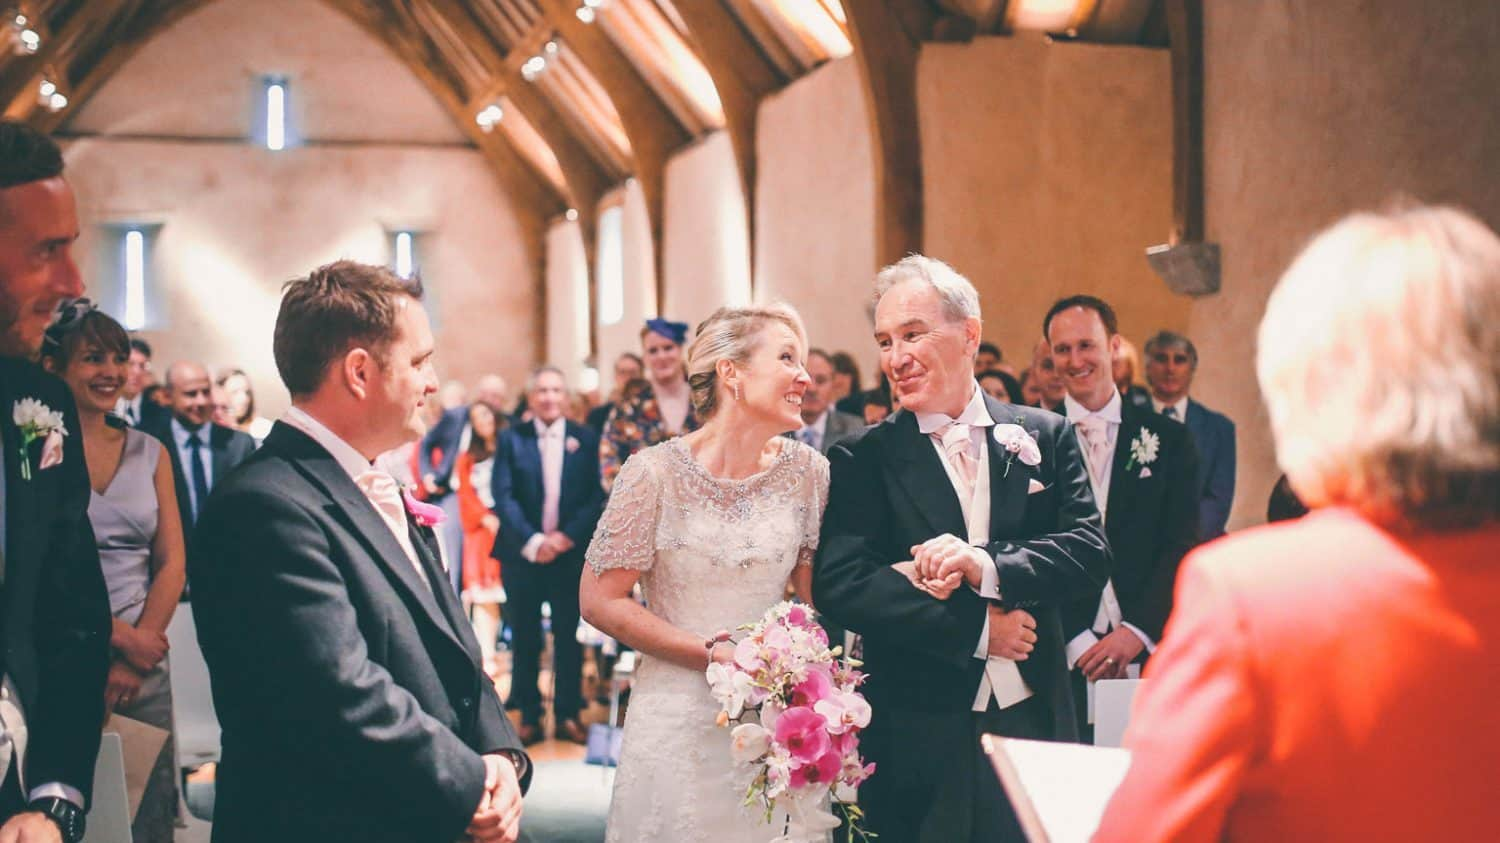 Marriage Ceremony Great Barn Devon Wedding Venue